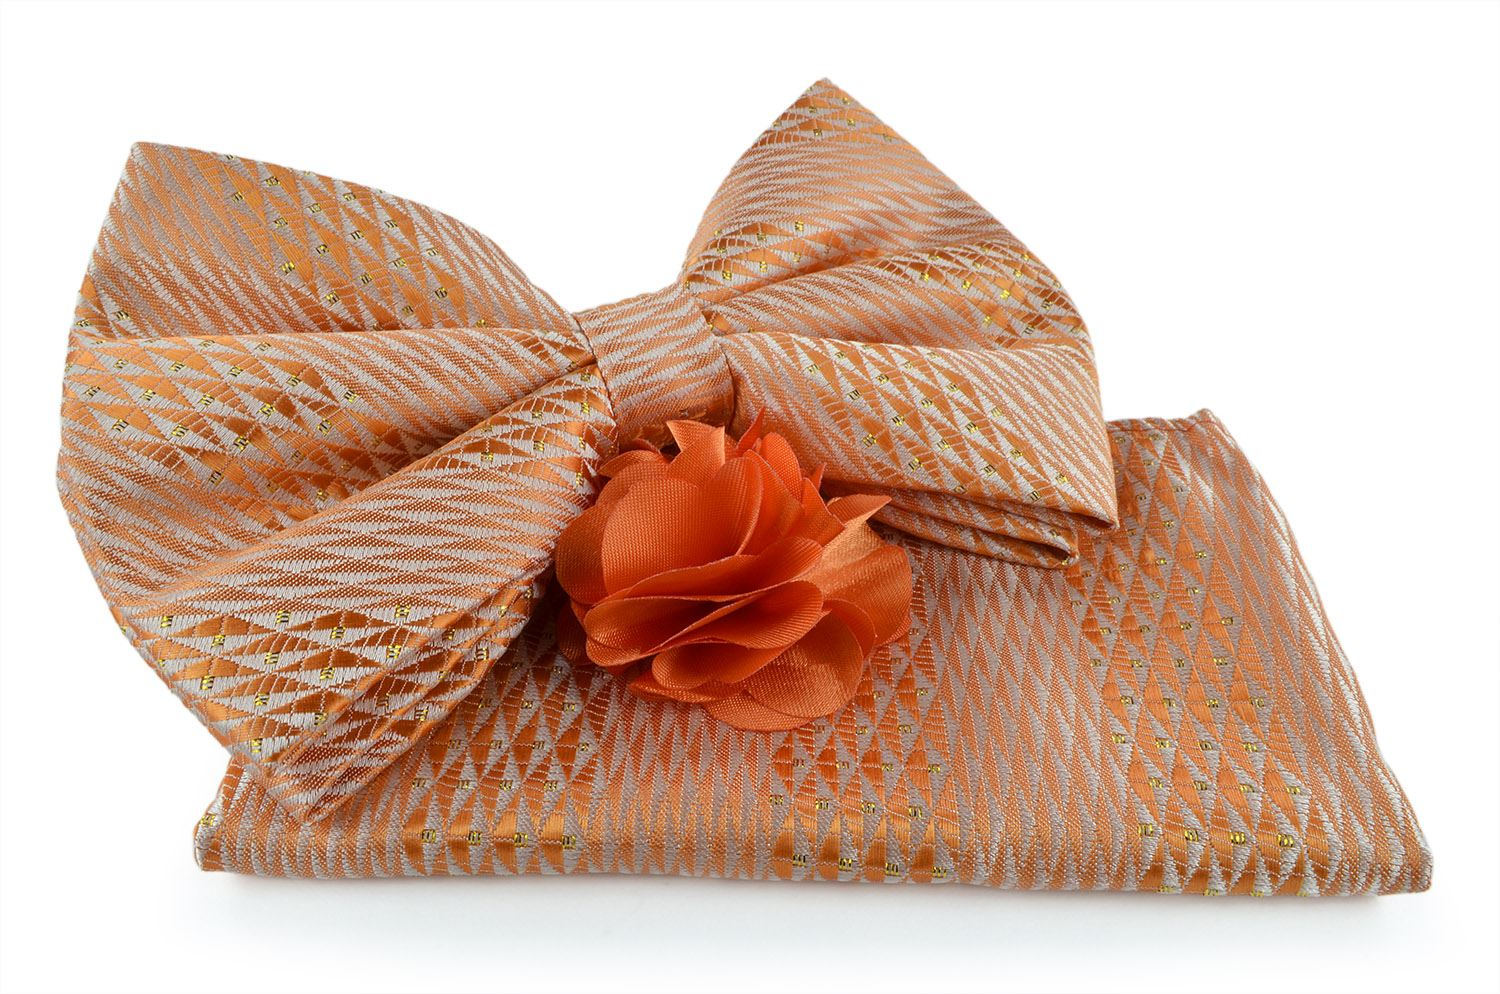 Uomo Vennetto Men's Orange Woven Bow Tie with Hanky and Lapel Flower